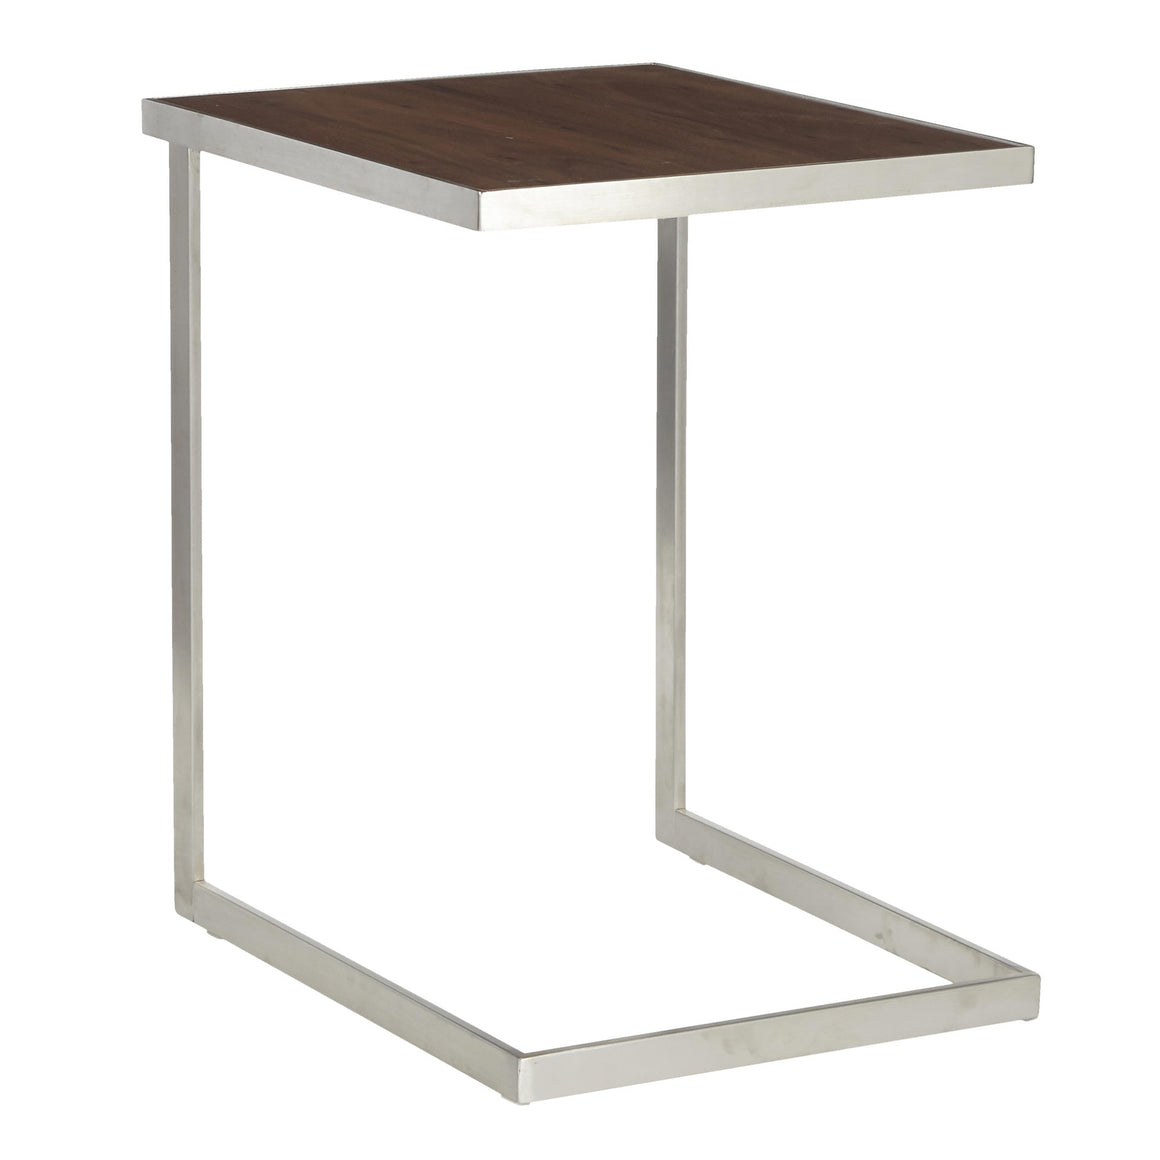 Industrial Zenn End Table in Stainless Steel and Walnut Wood by LumiSource